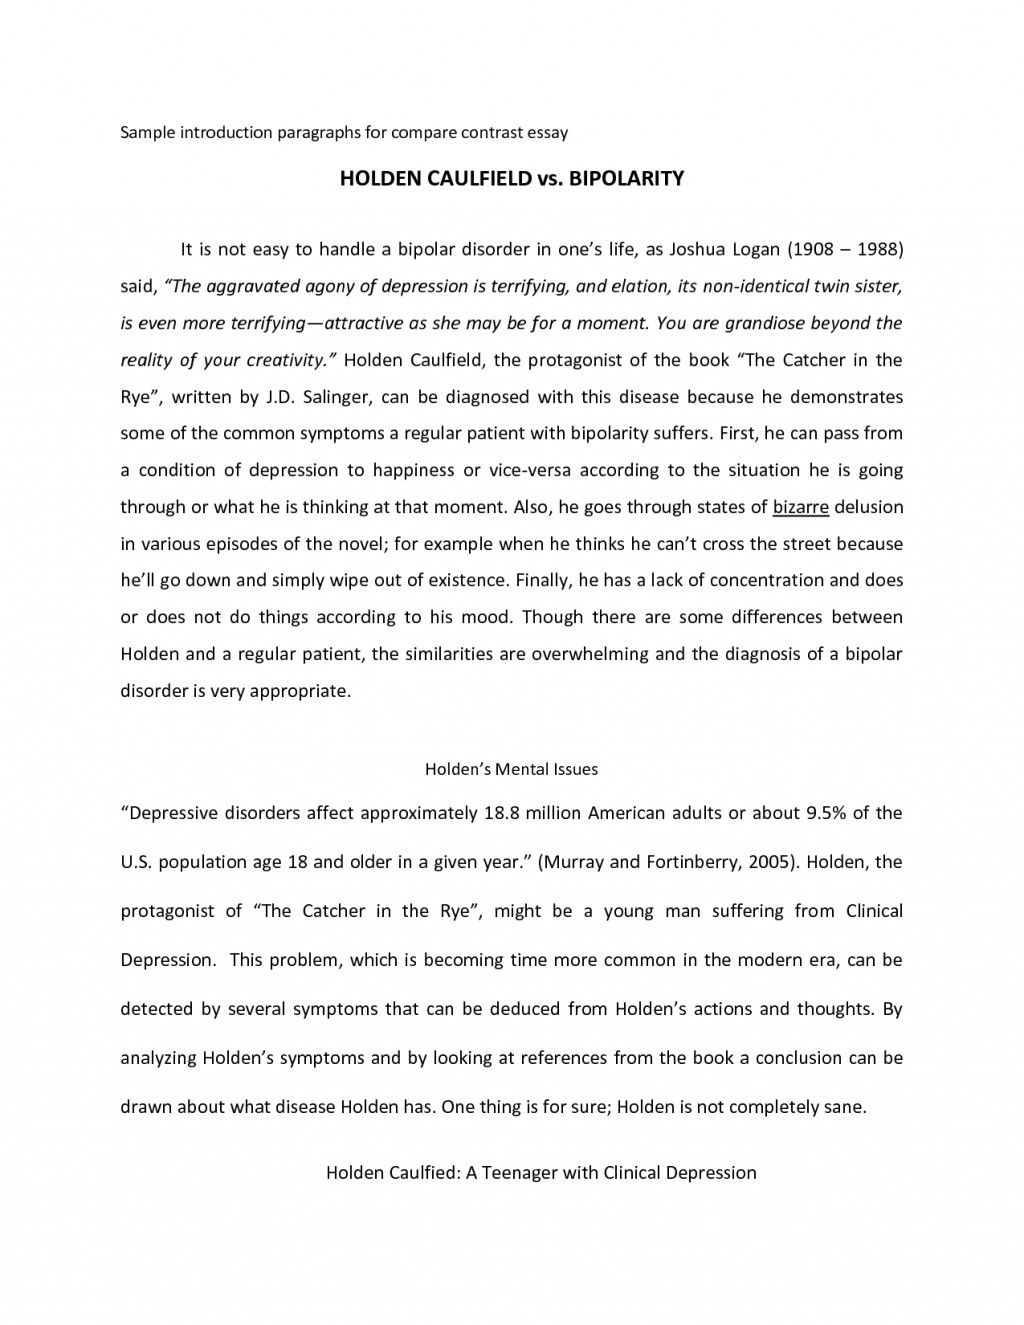 011 Compare And Contrast Essay Introduction Example Collection Of Solutions Examples Comparison Essays Bunch Ideas On L Block Format 4th Grade 5th Food Middle Magnificent Paragraph How To Write A Template Large